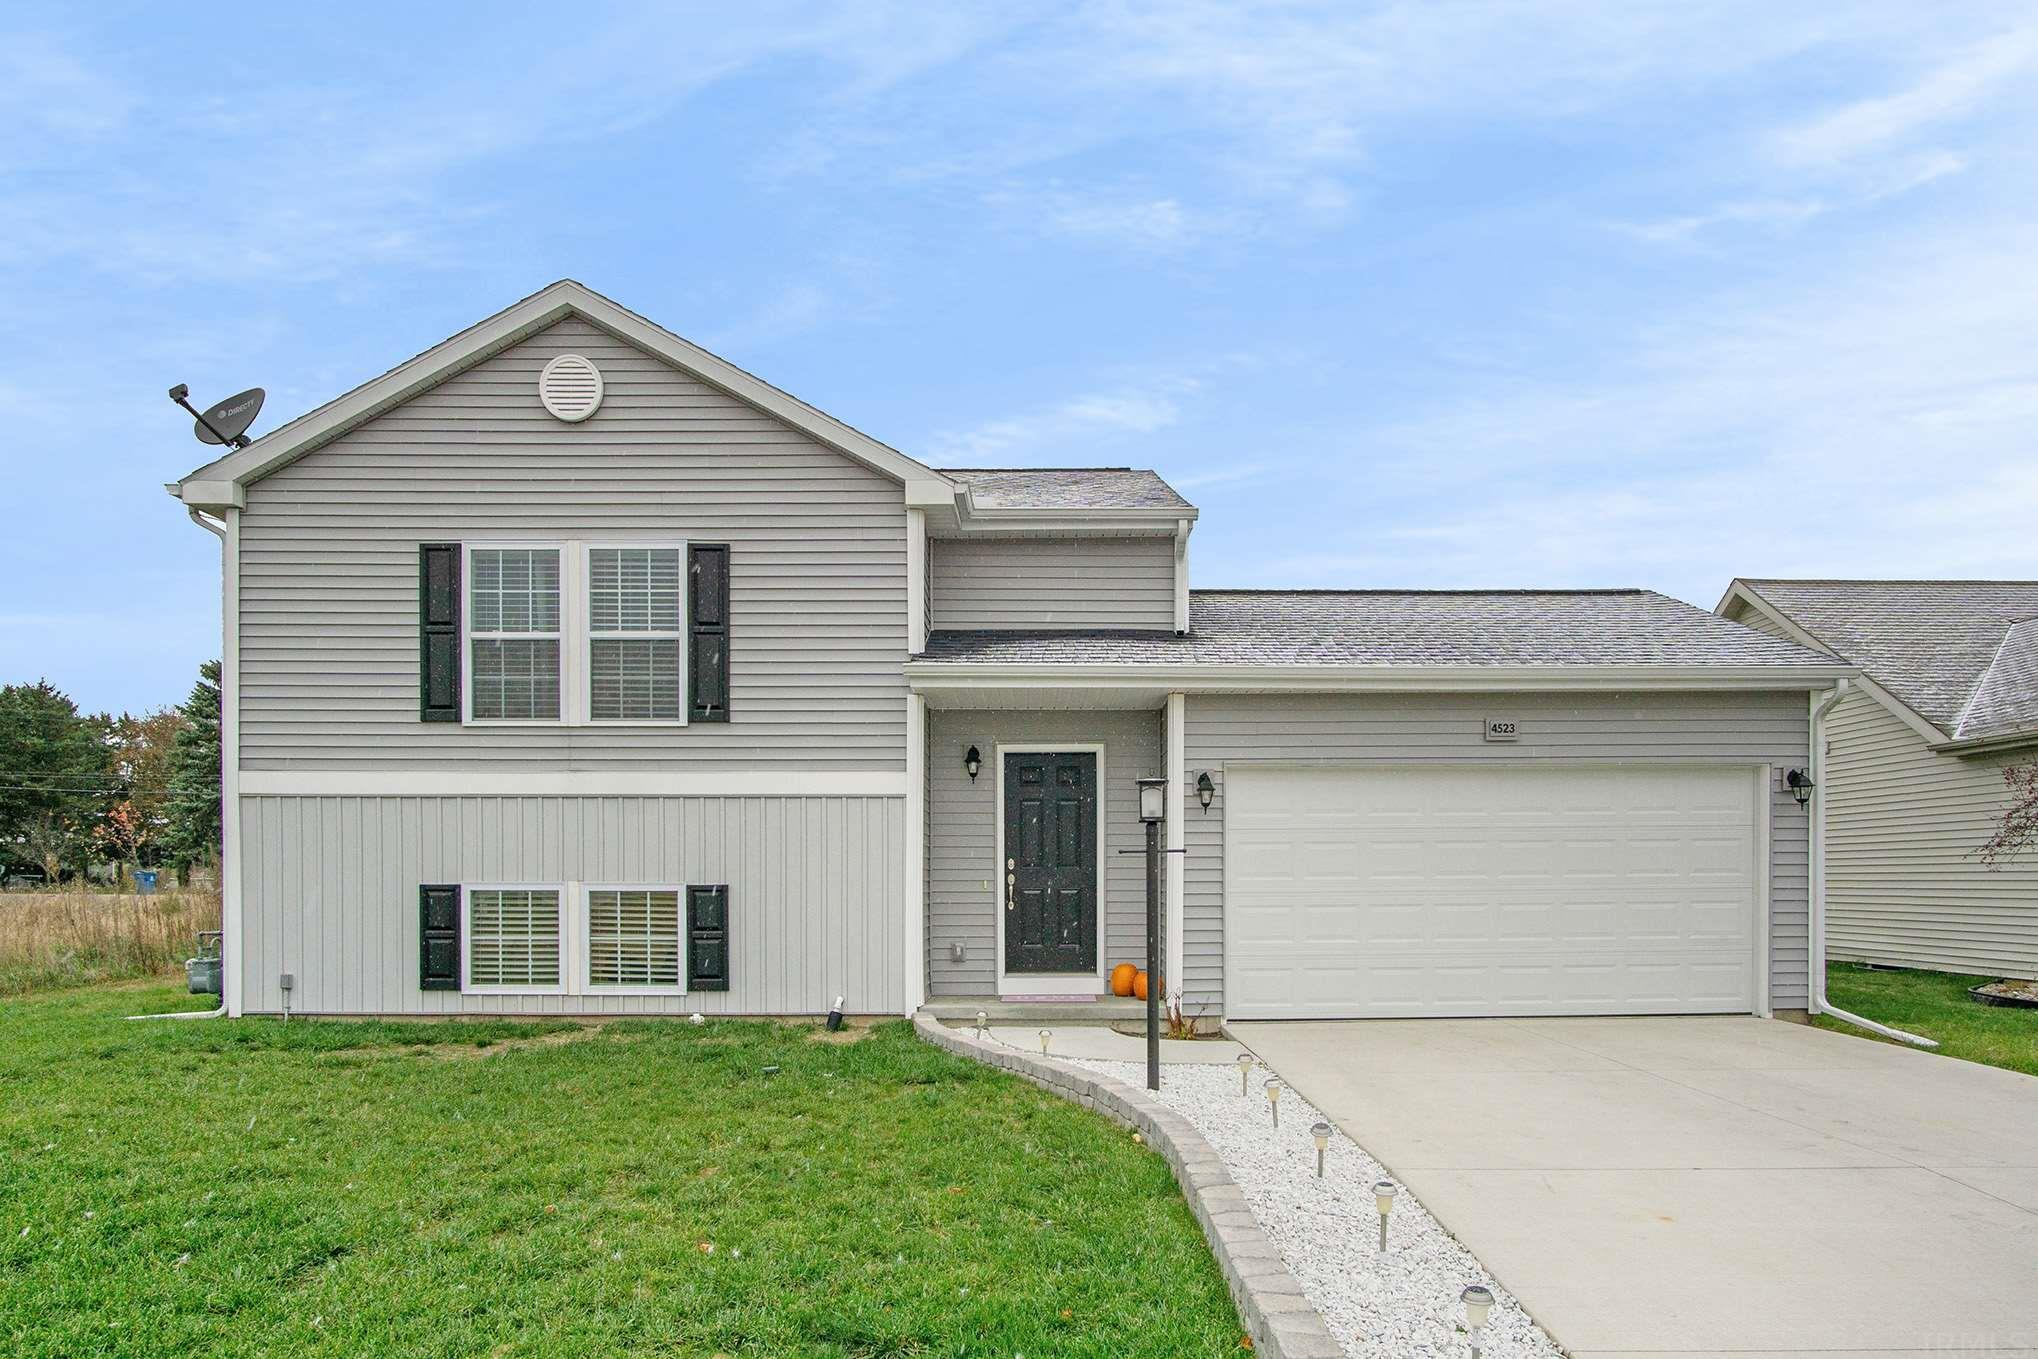 4523 Ashard South Bend, IN 46628